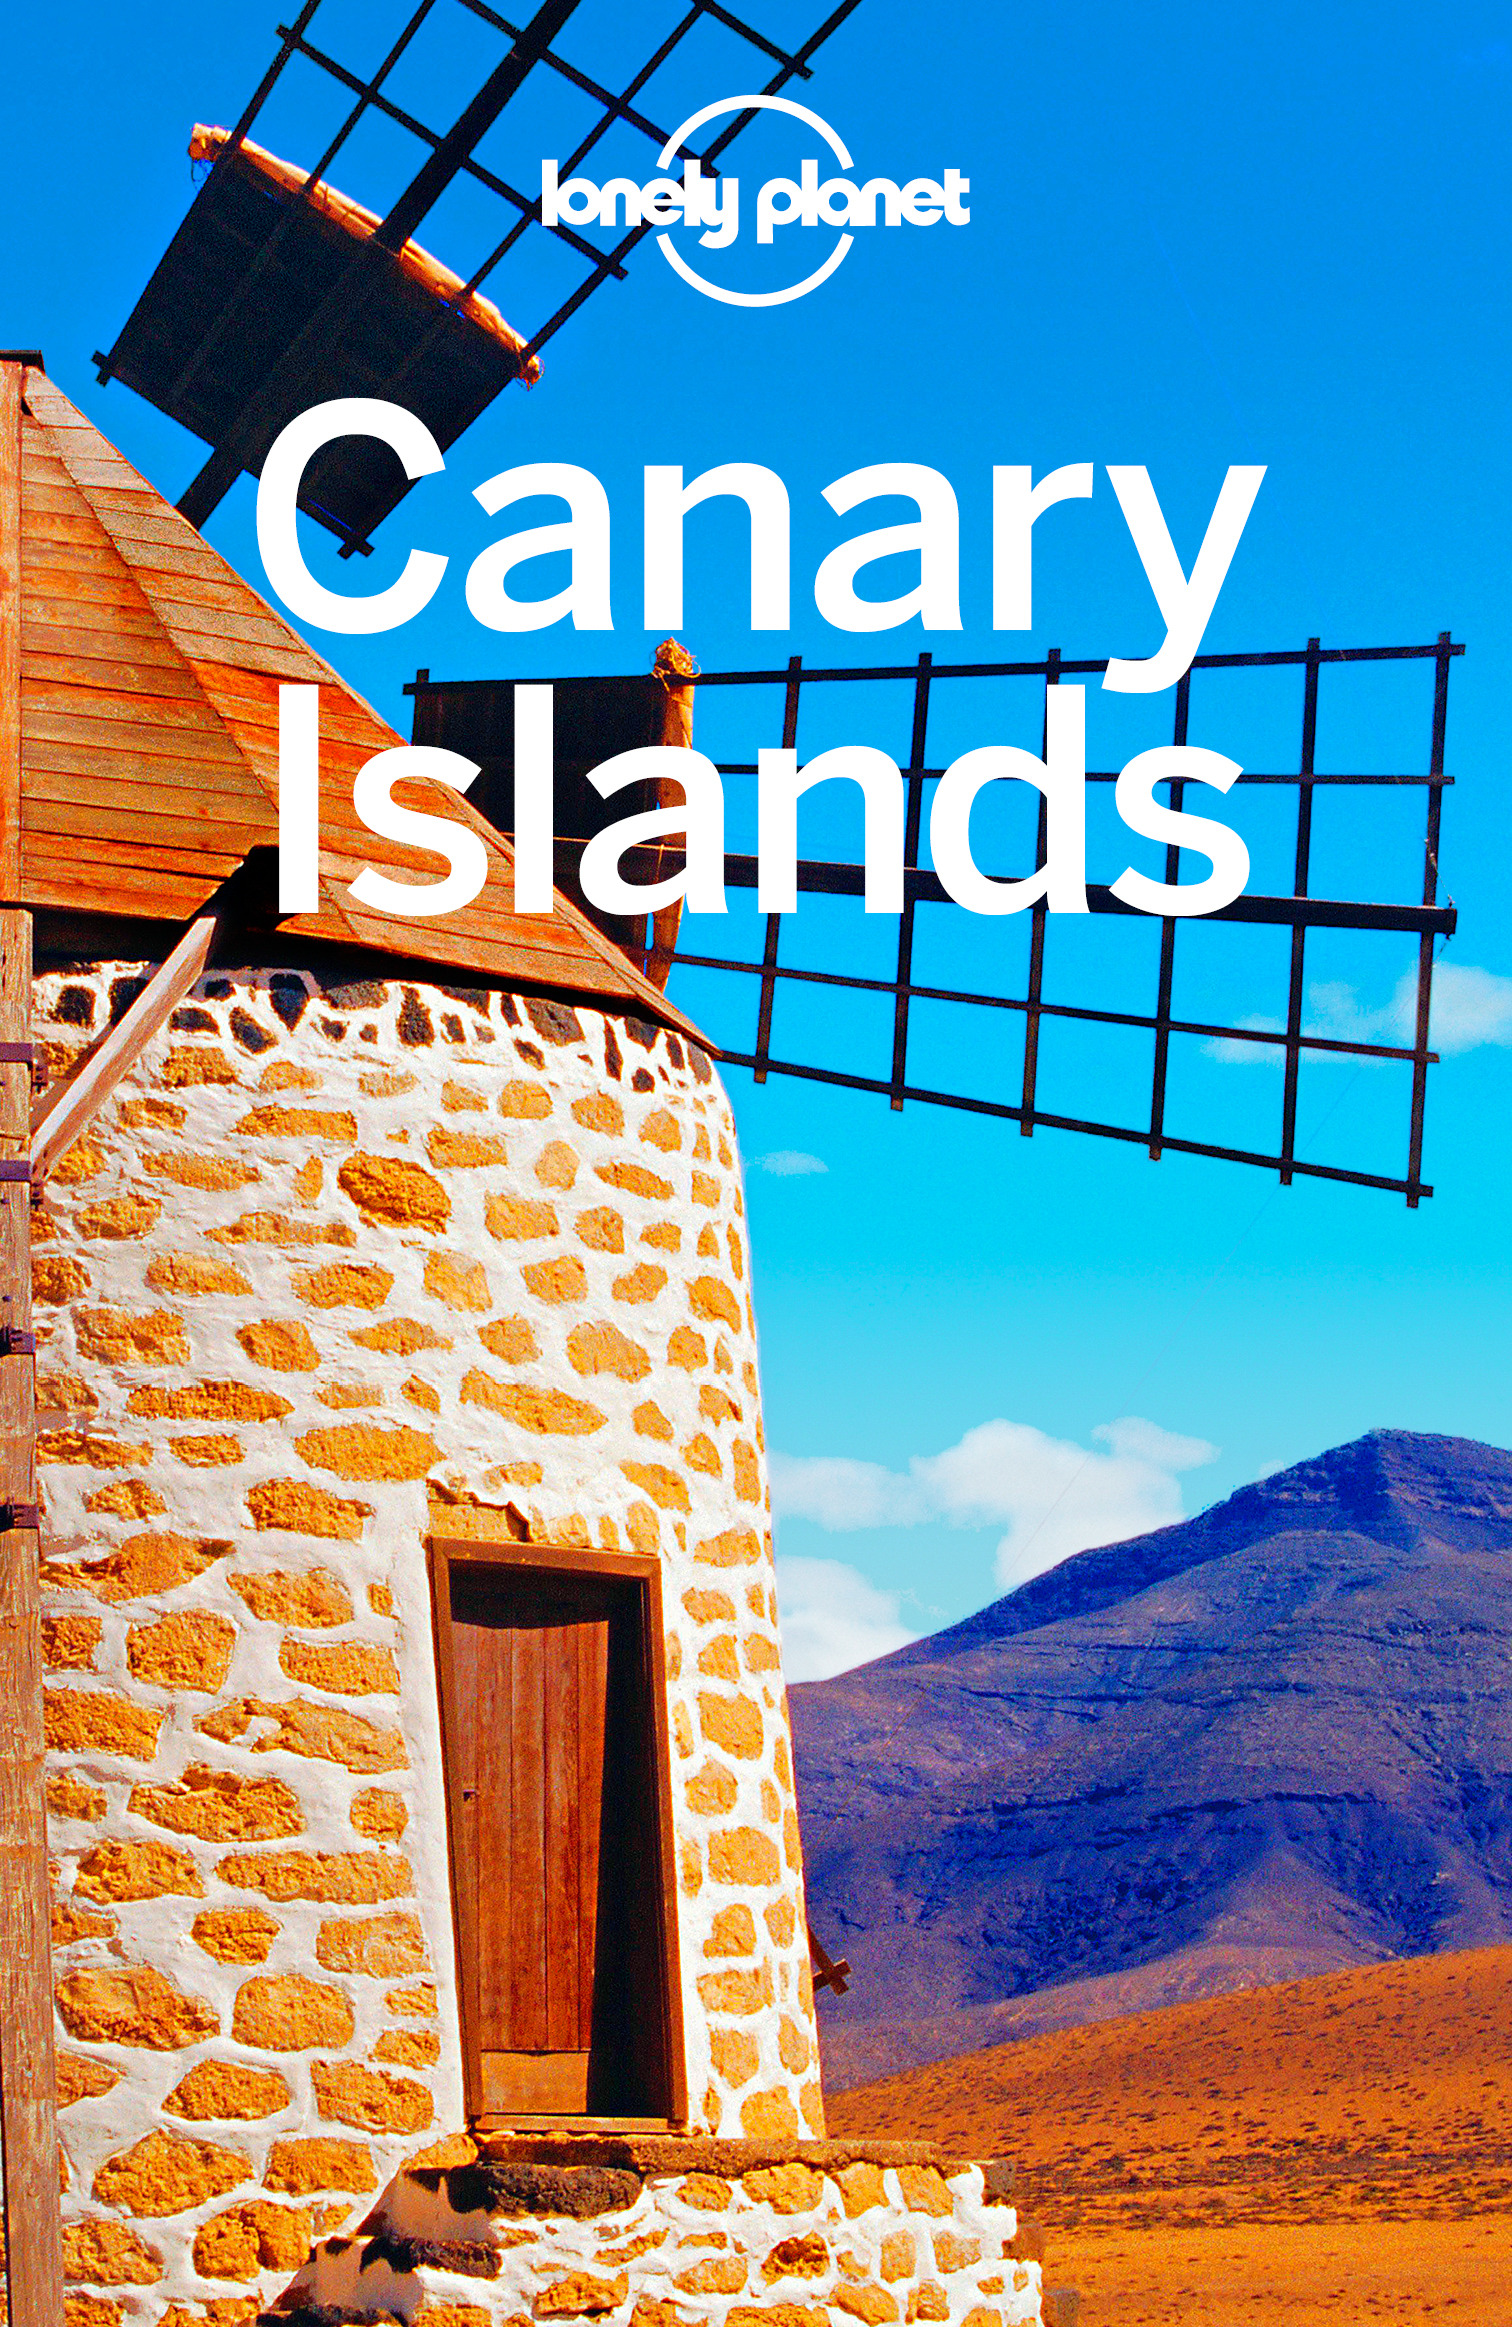 Corne, Lucy - Lonely Planet Canary Islands, ebook